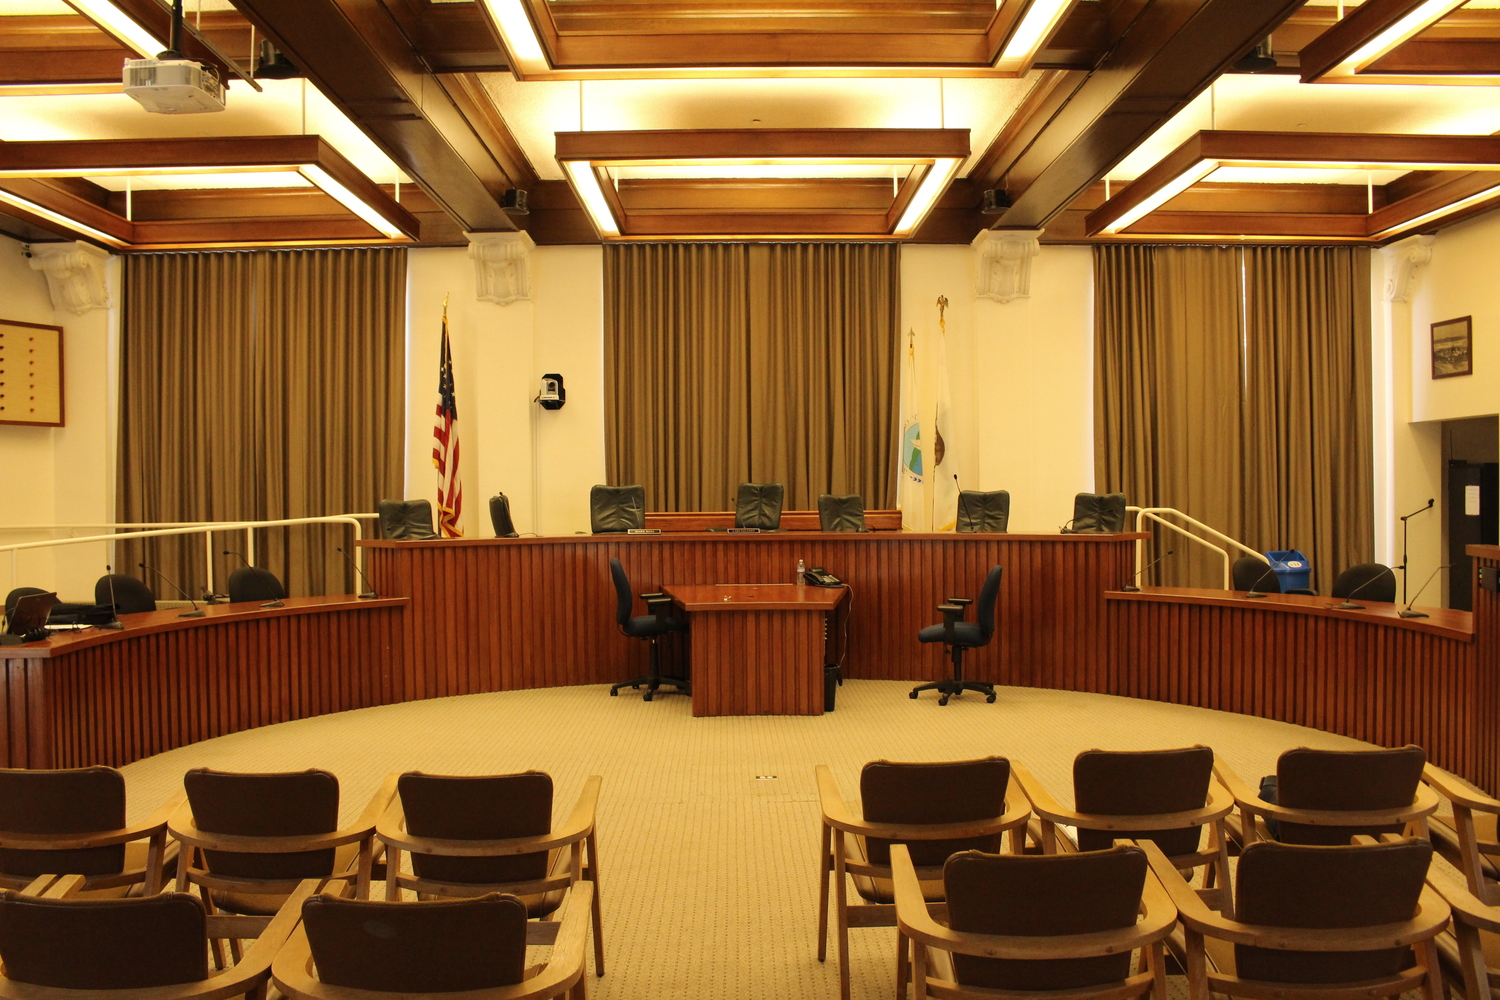 City of Martinez Council Chambers during a lighting and HVAC energy assessment.